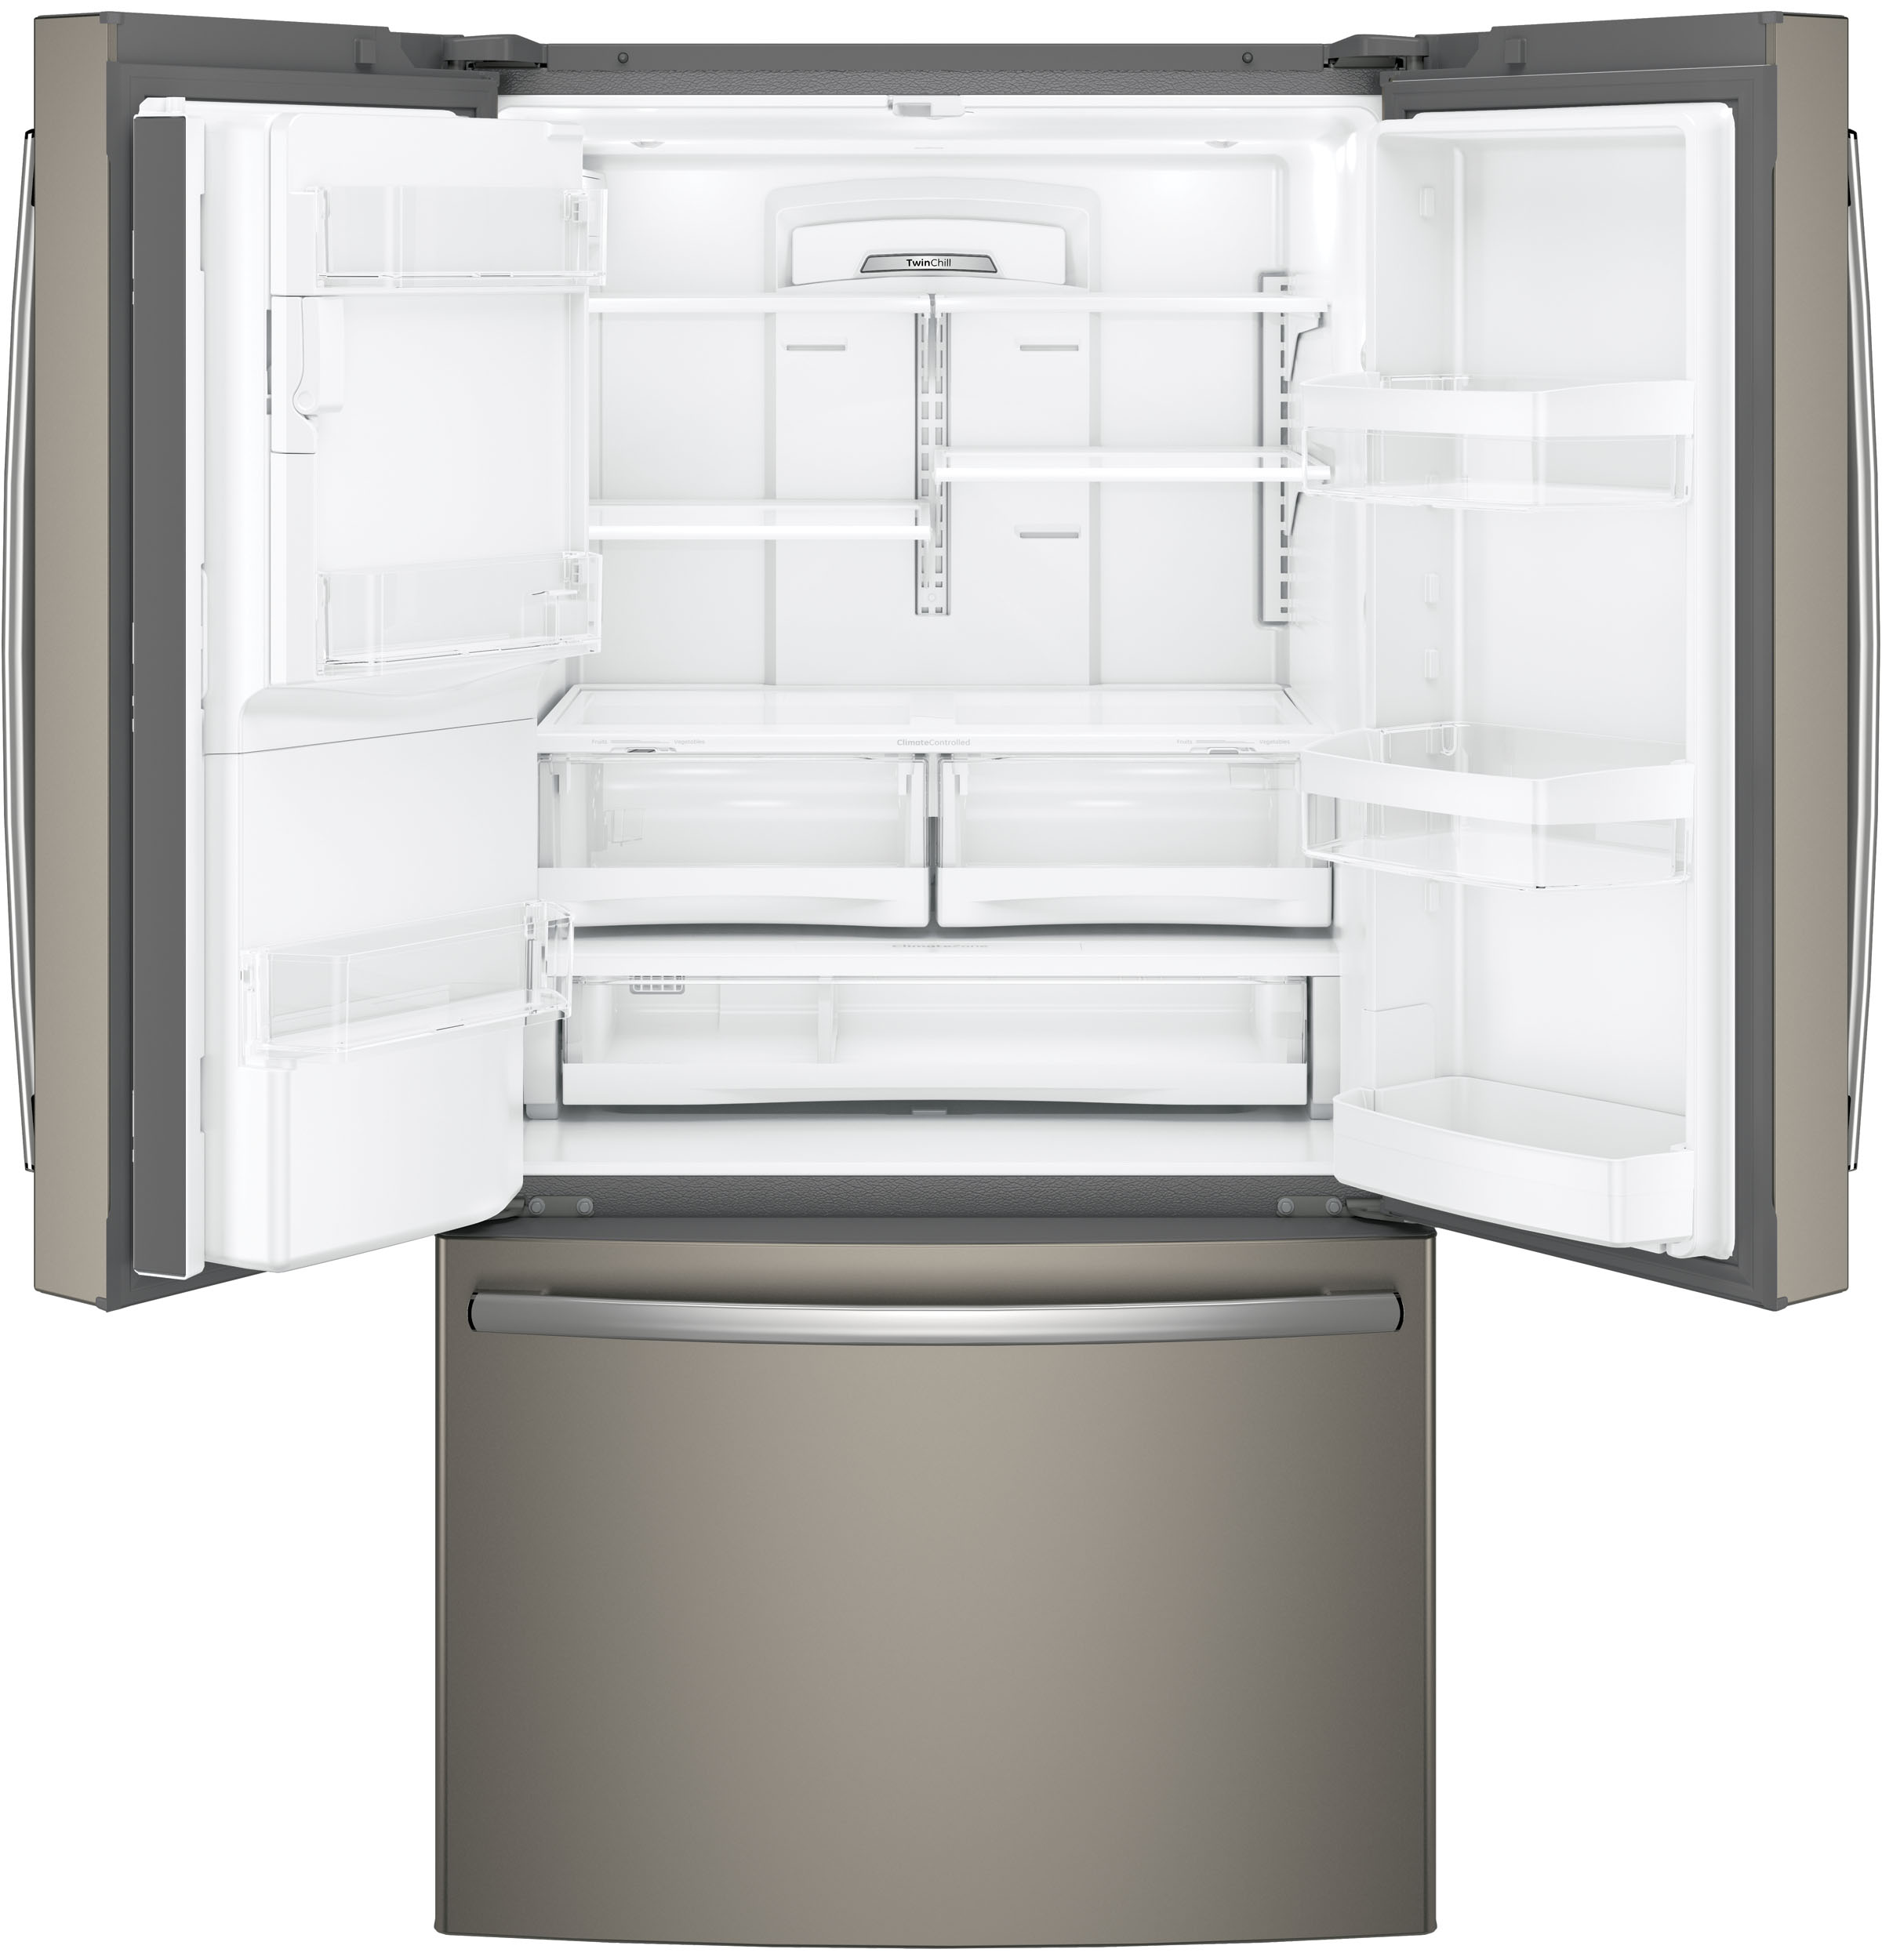 Model: GFS26GMNES | GE® 25.8 Cu. Ft. French-Door Refrigerator